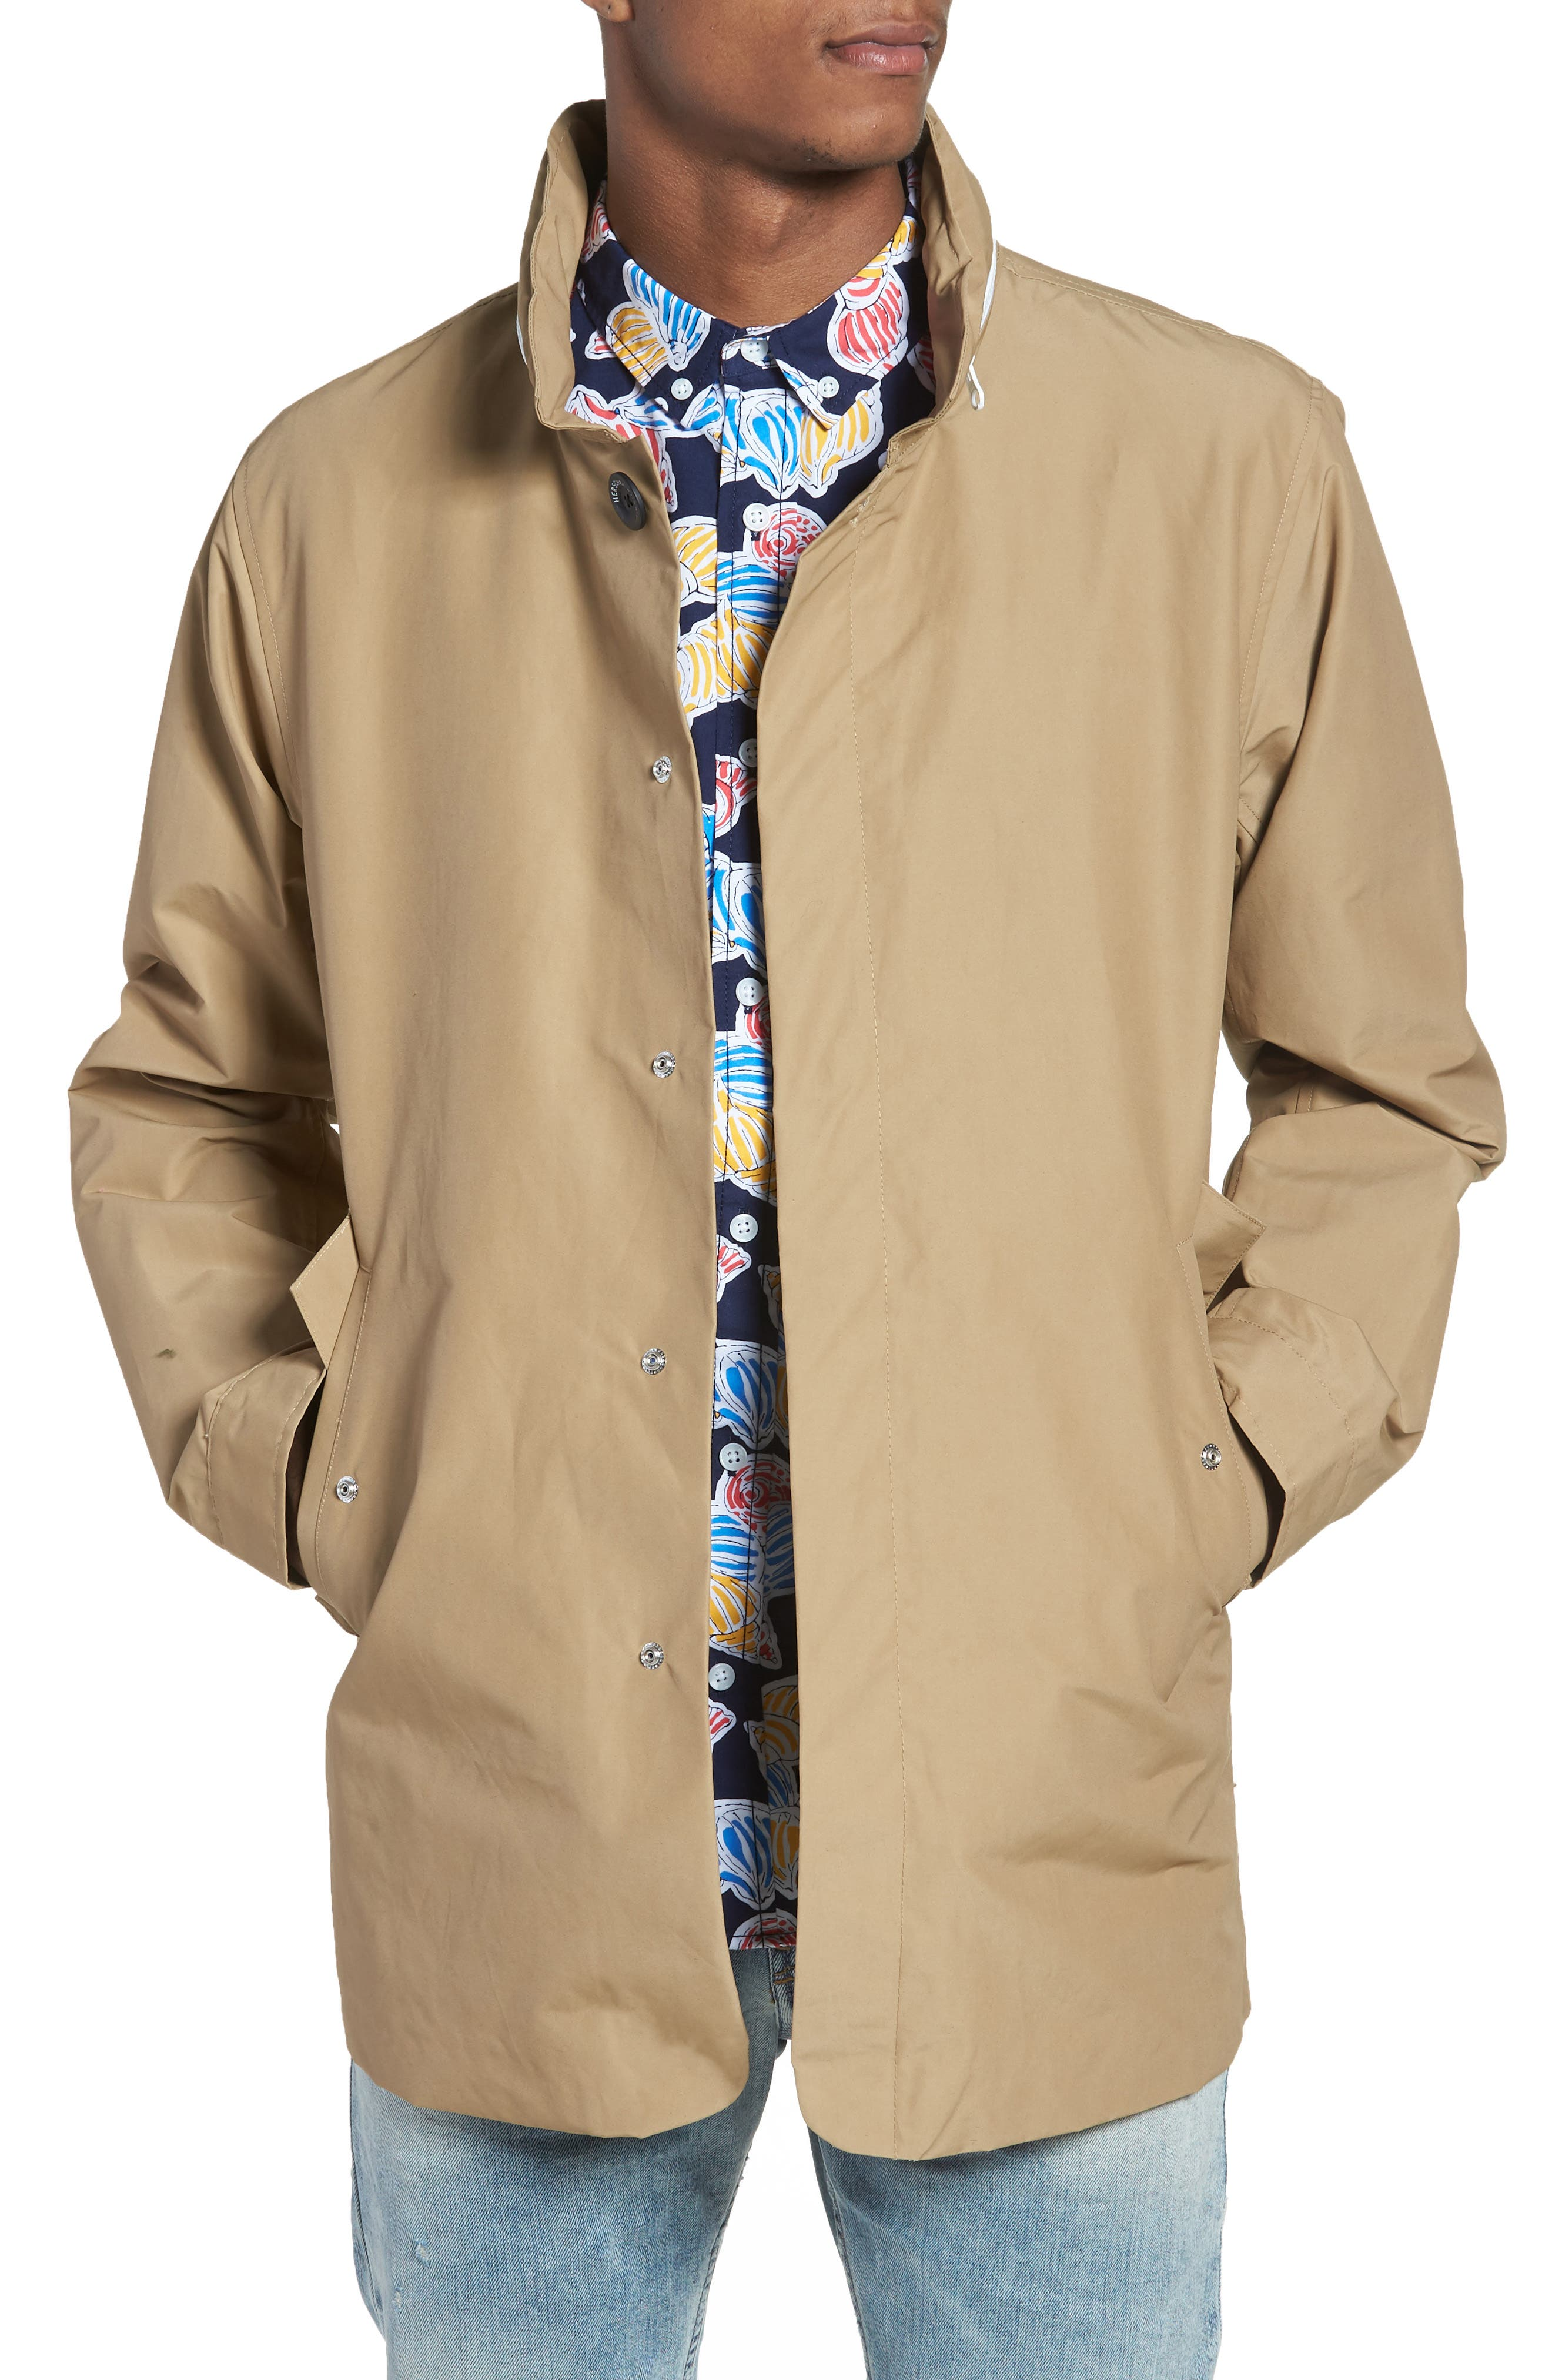 Stowaway Mac Jacket,                             Main thumbnail 1, color,                             Khaki/ Woodland Camo